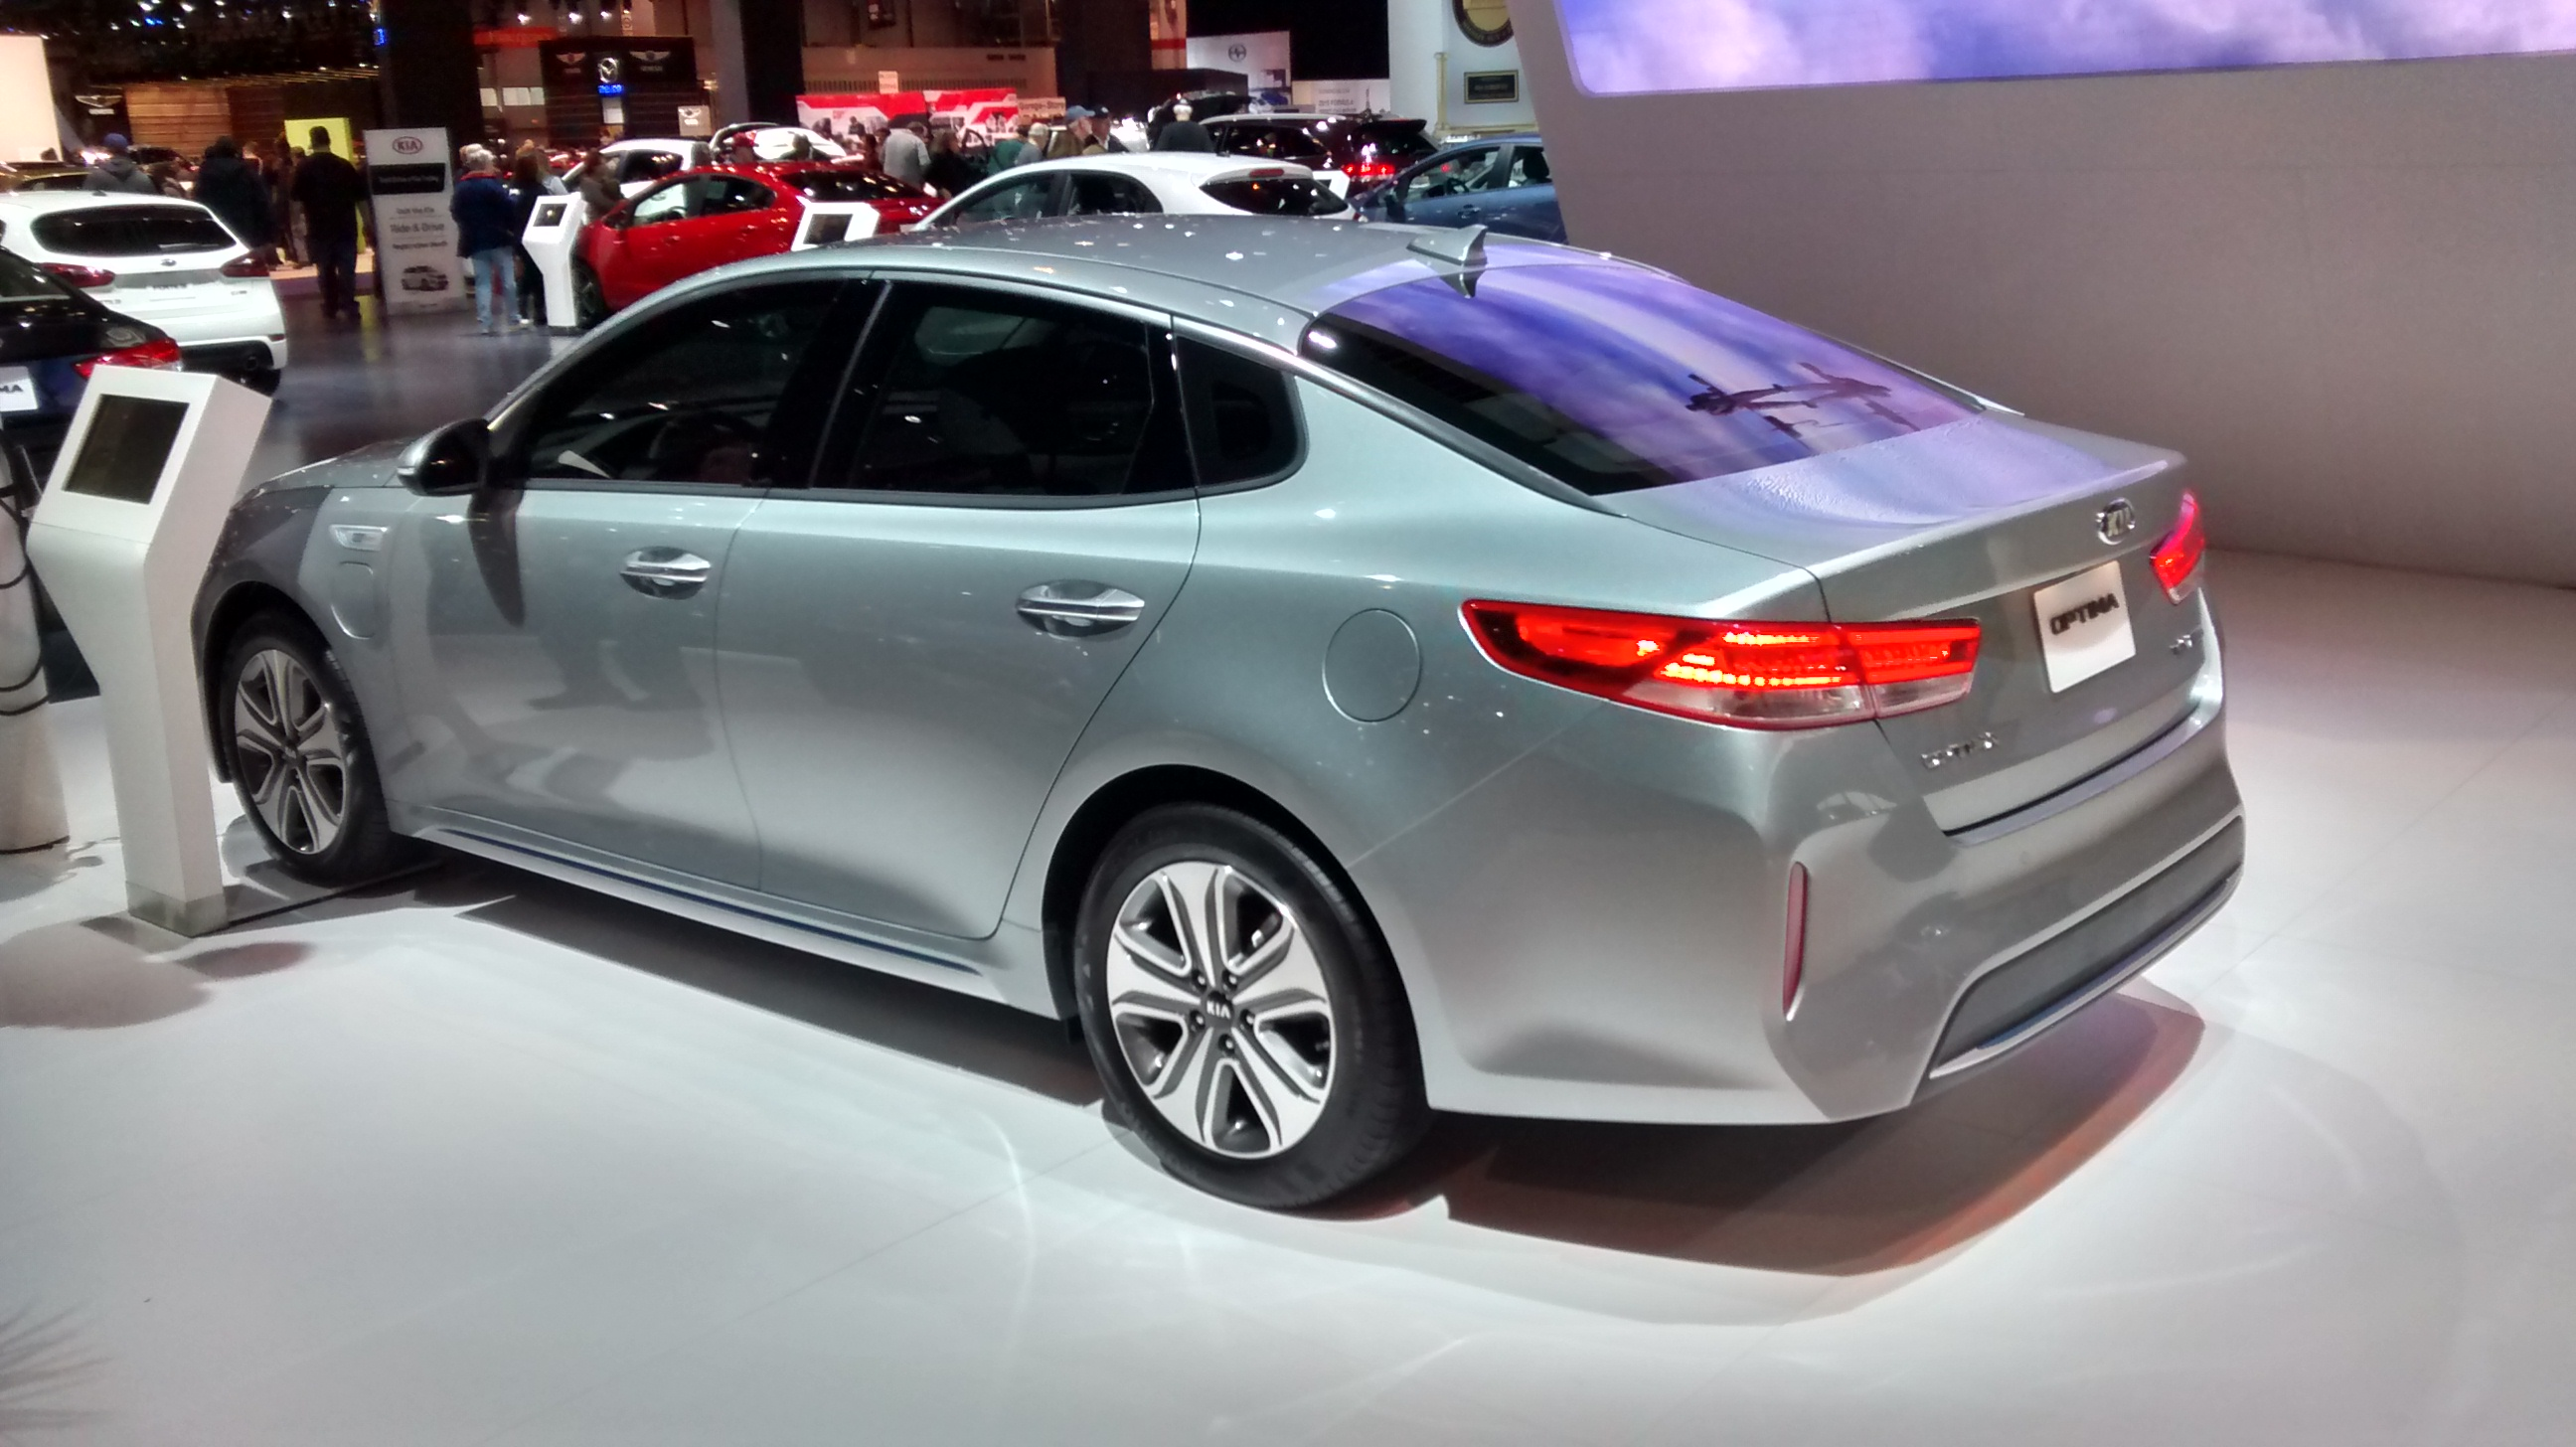 optima kia background of hybrid country charleston models